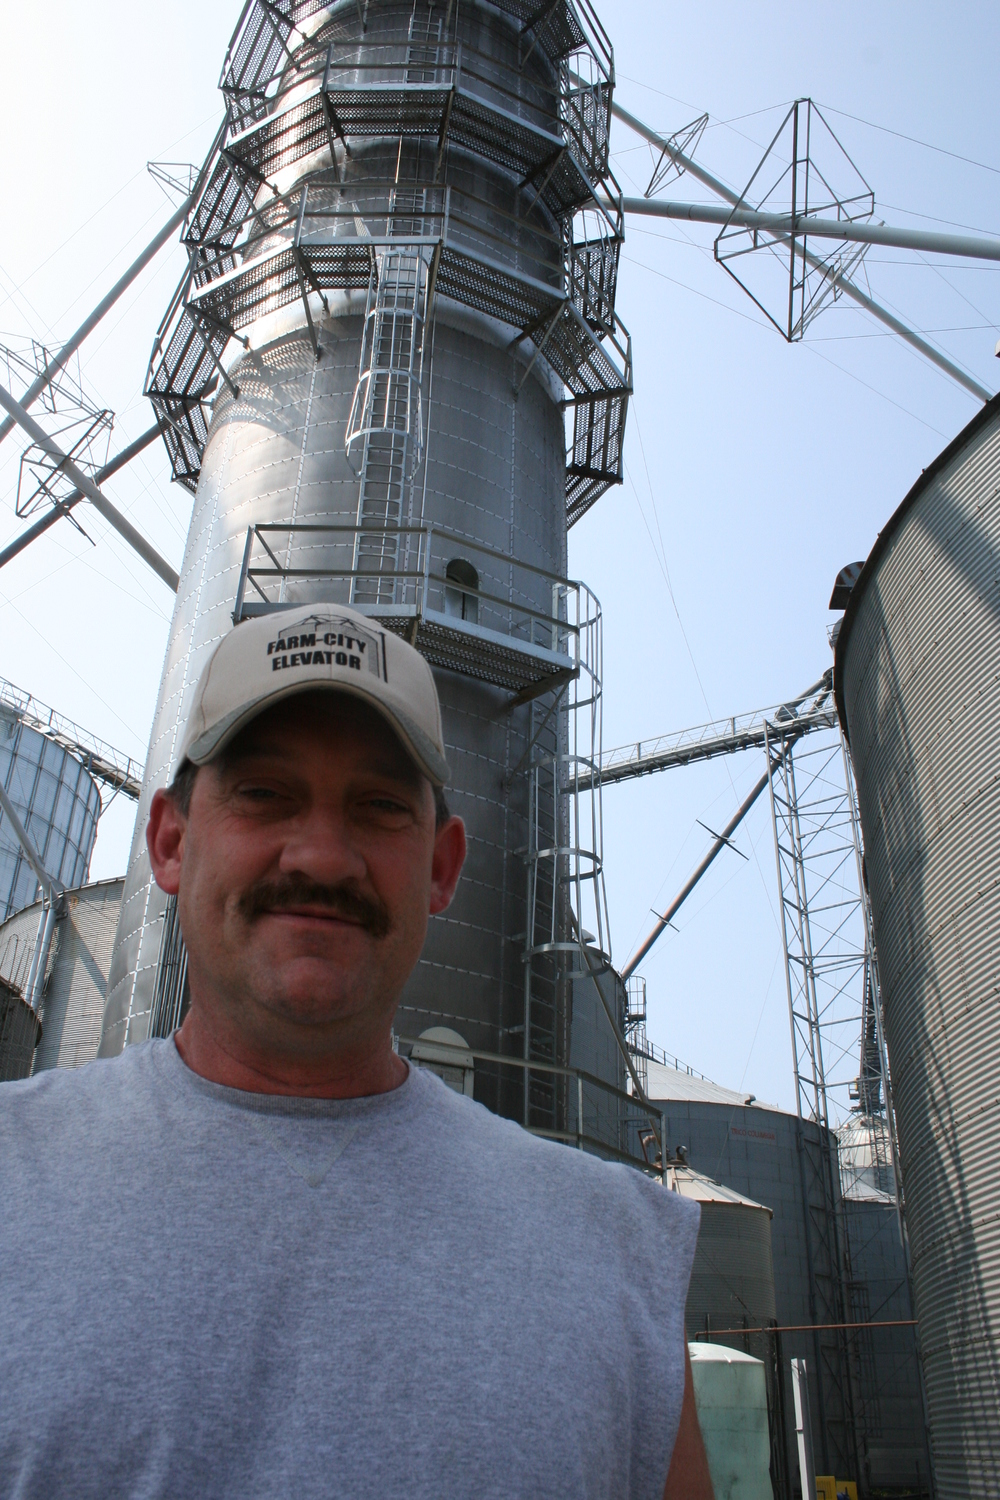 Farm City Elevator -Tim Buchheit 07 002.jpg